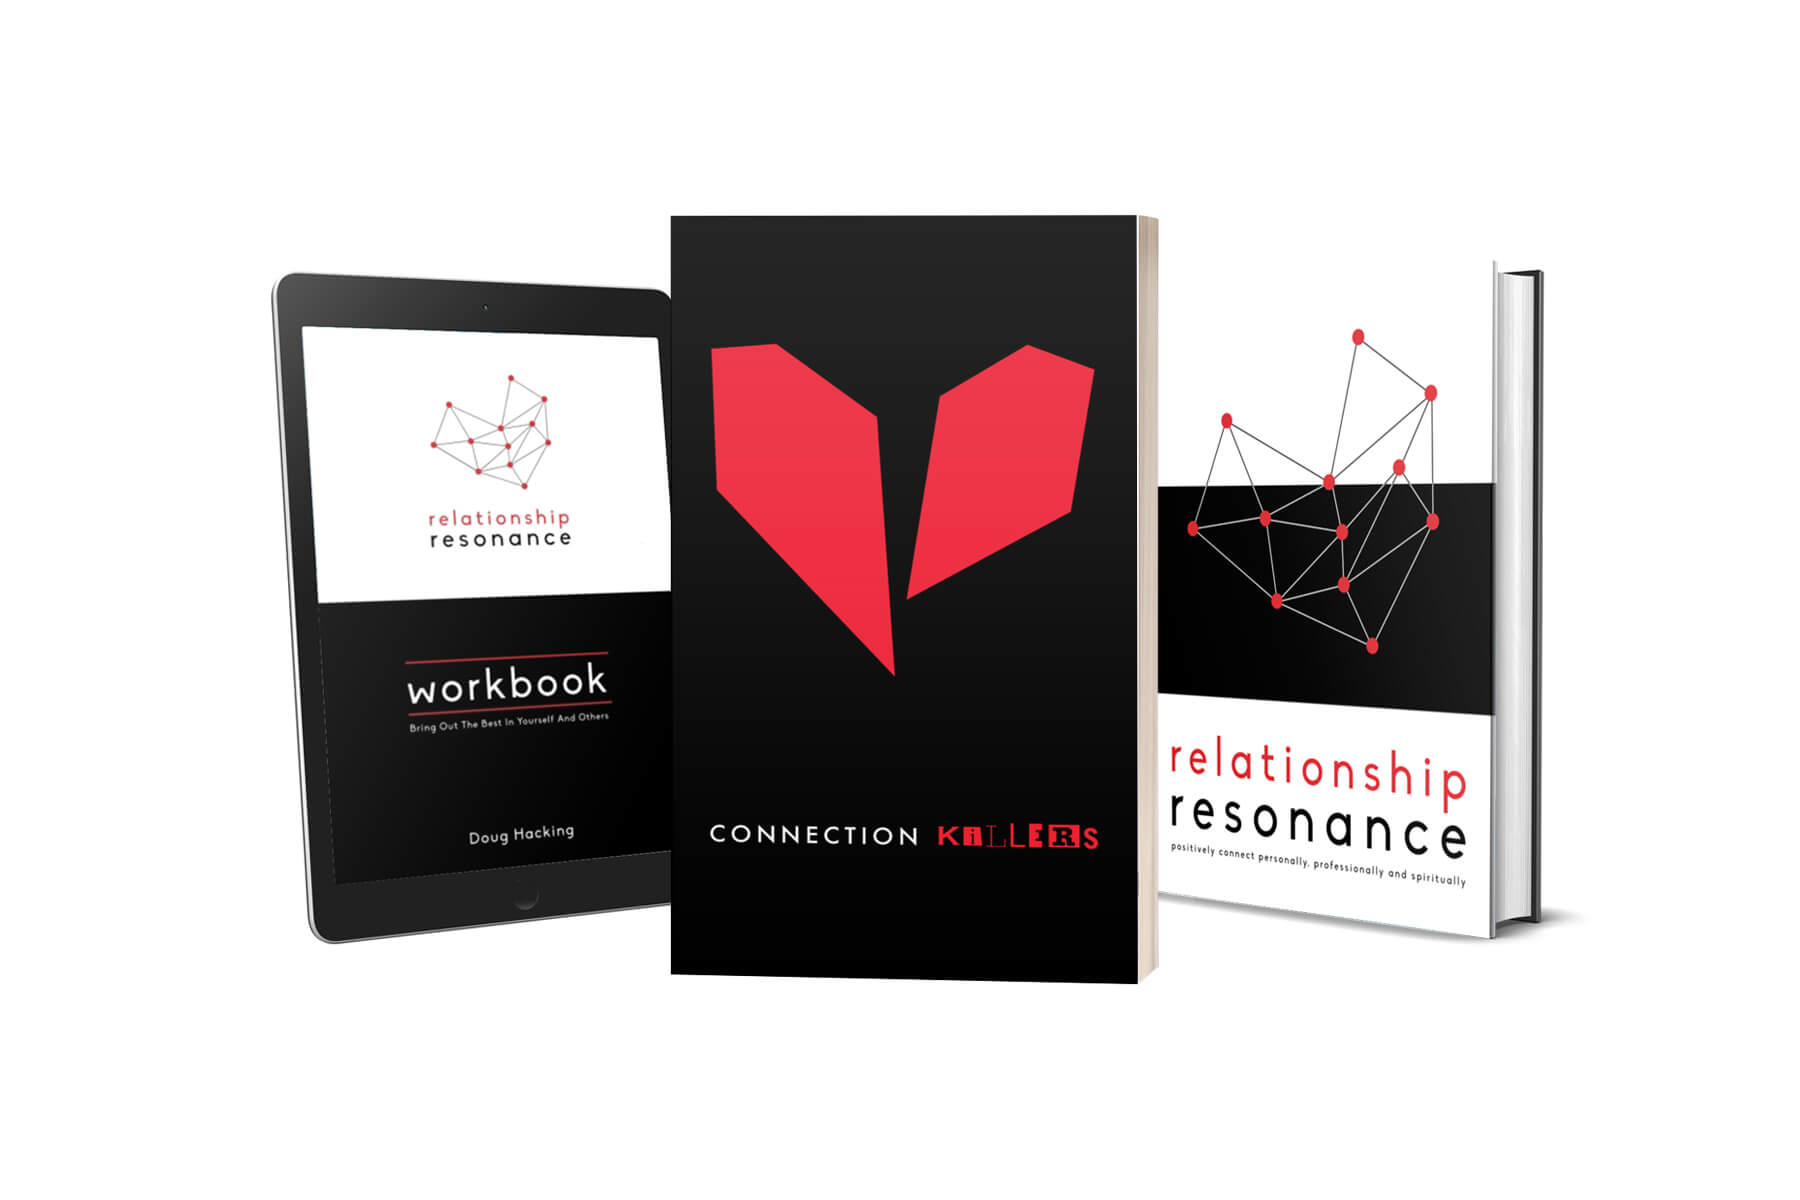 Set 1: Relationship Resonance Soft Cover & Workbook + Connection Killers Soft Cover